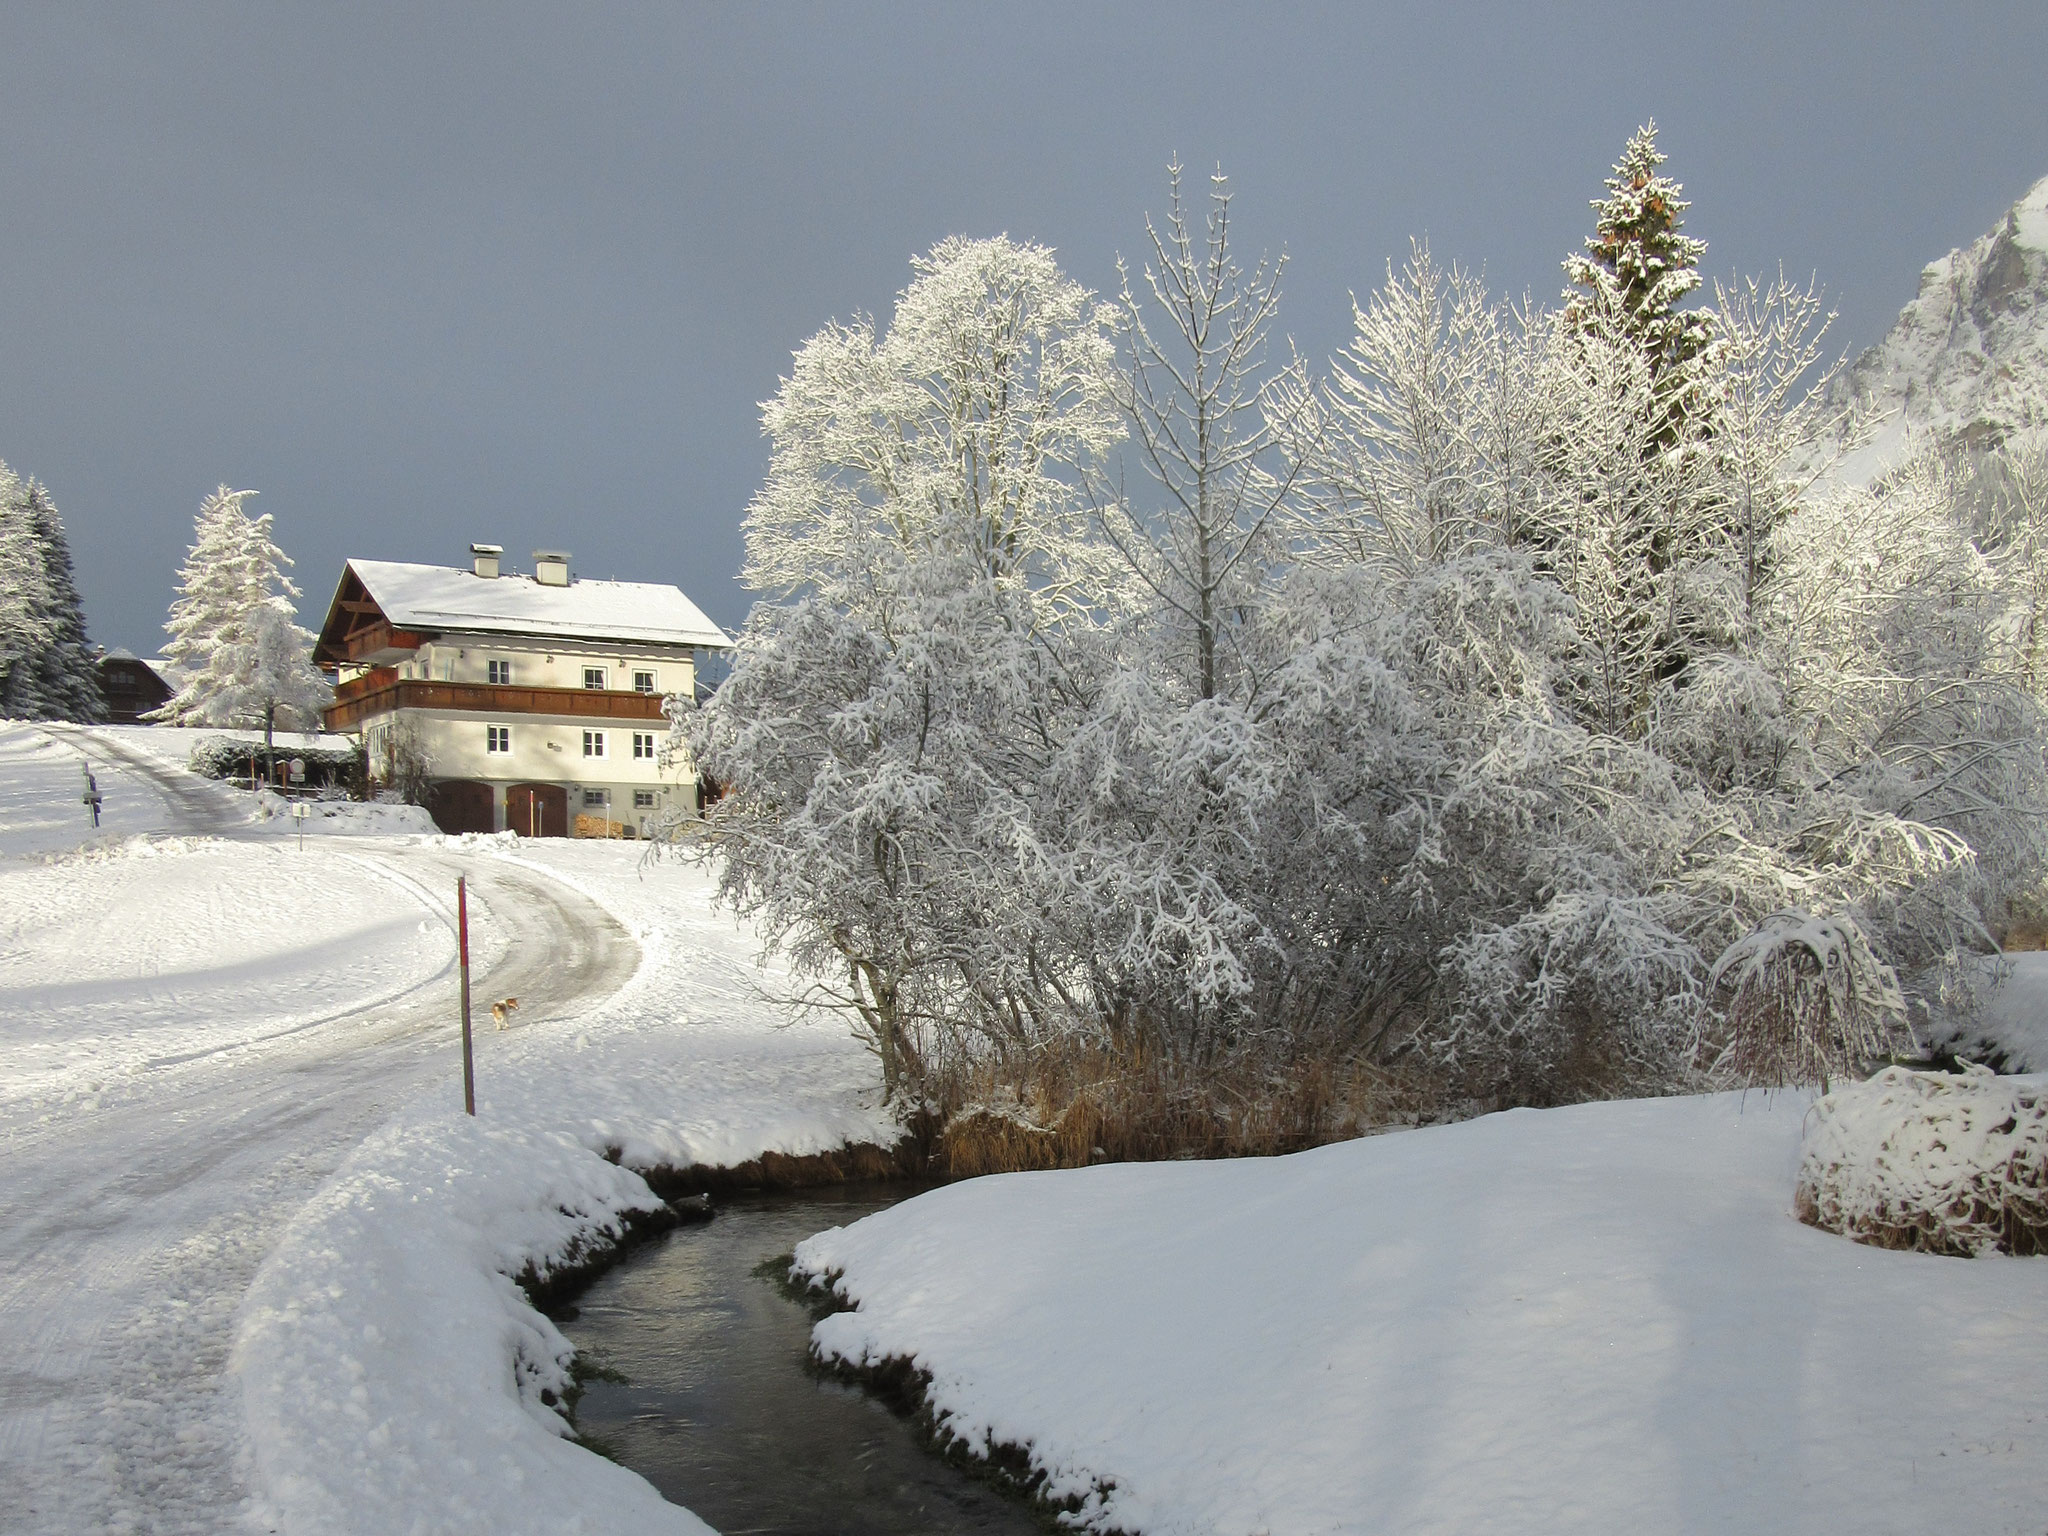 Haus Heidi in winter